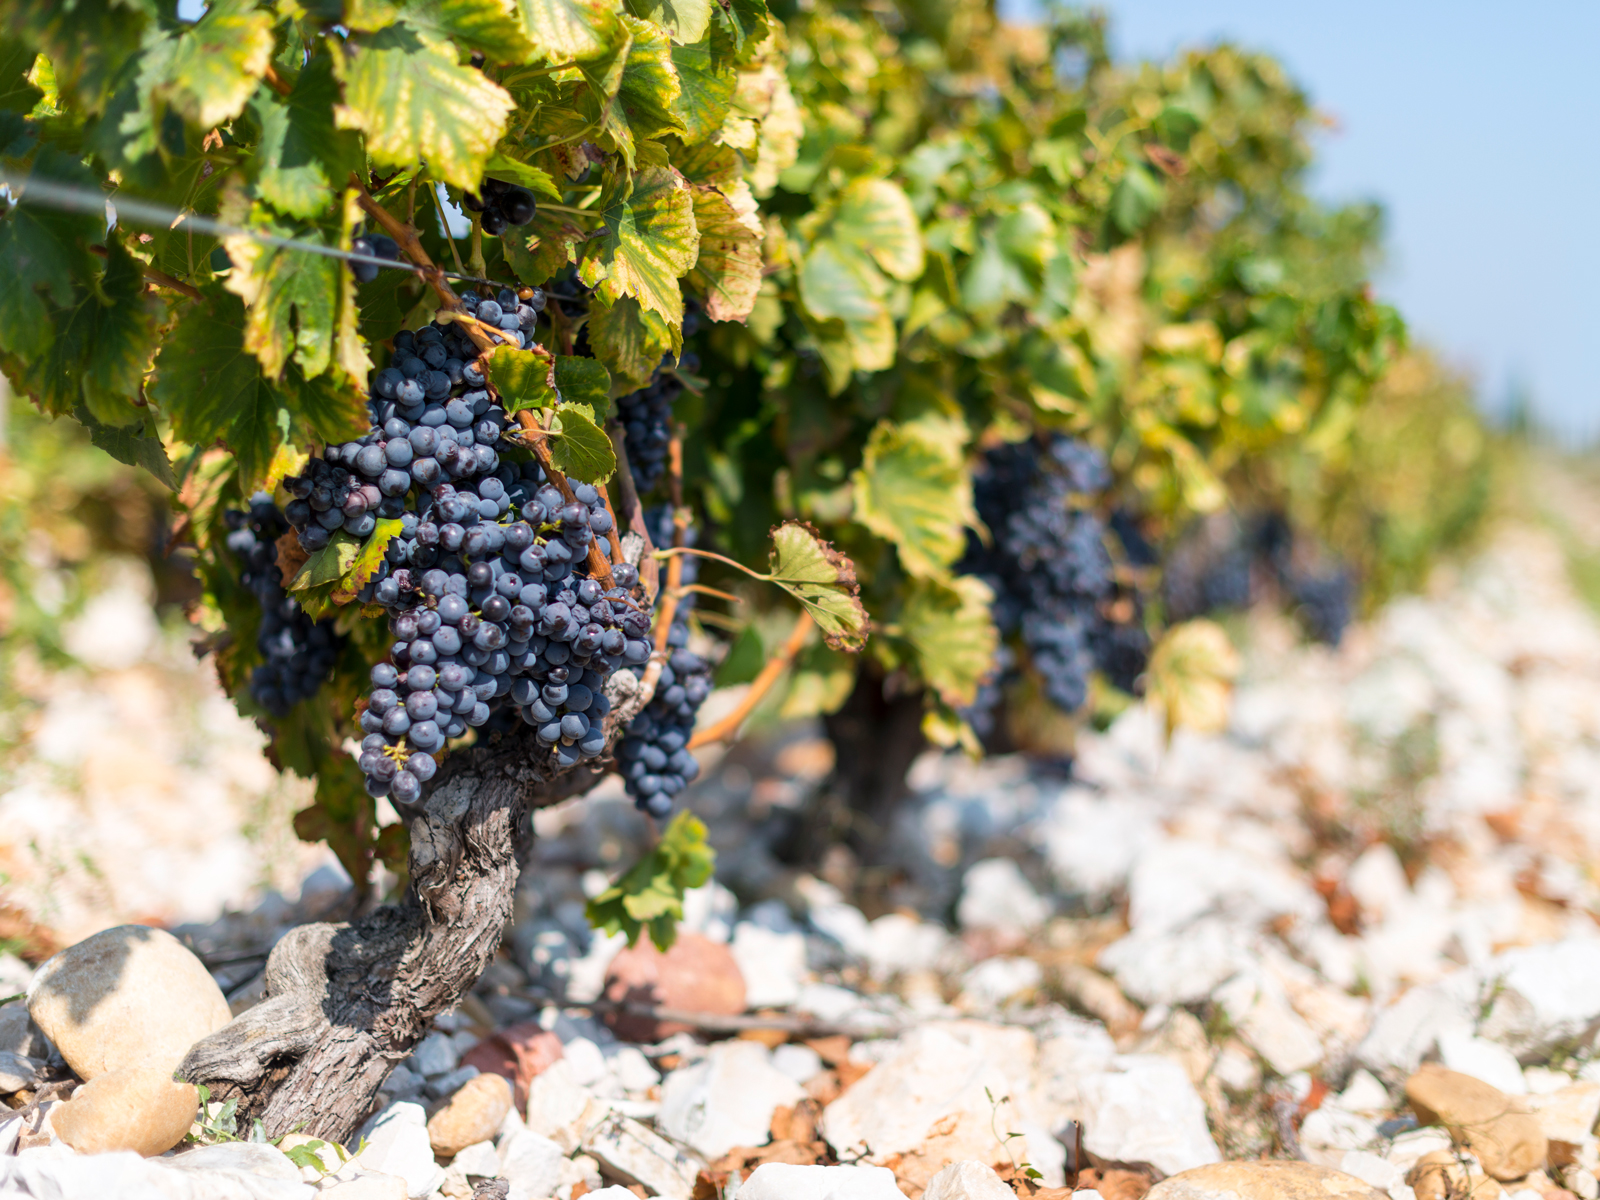 Climate Change Could Affect How Chateauneuf-du-Pape Is Made